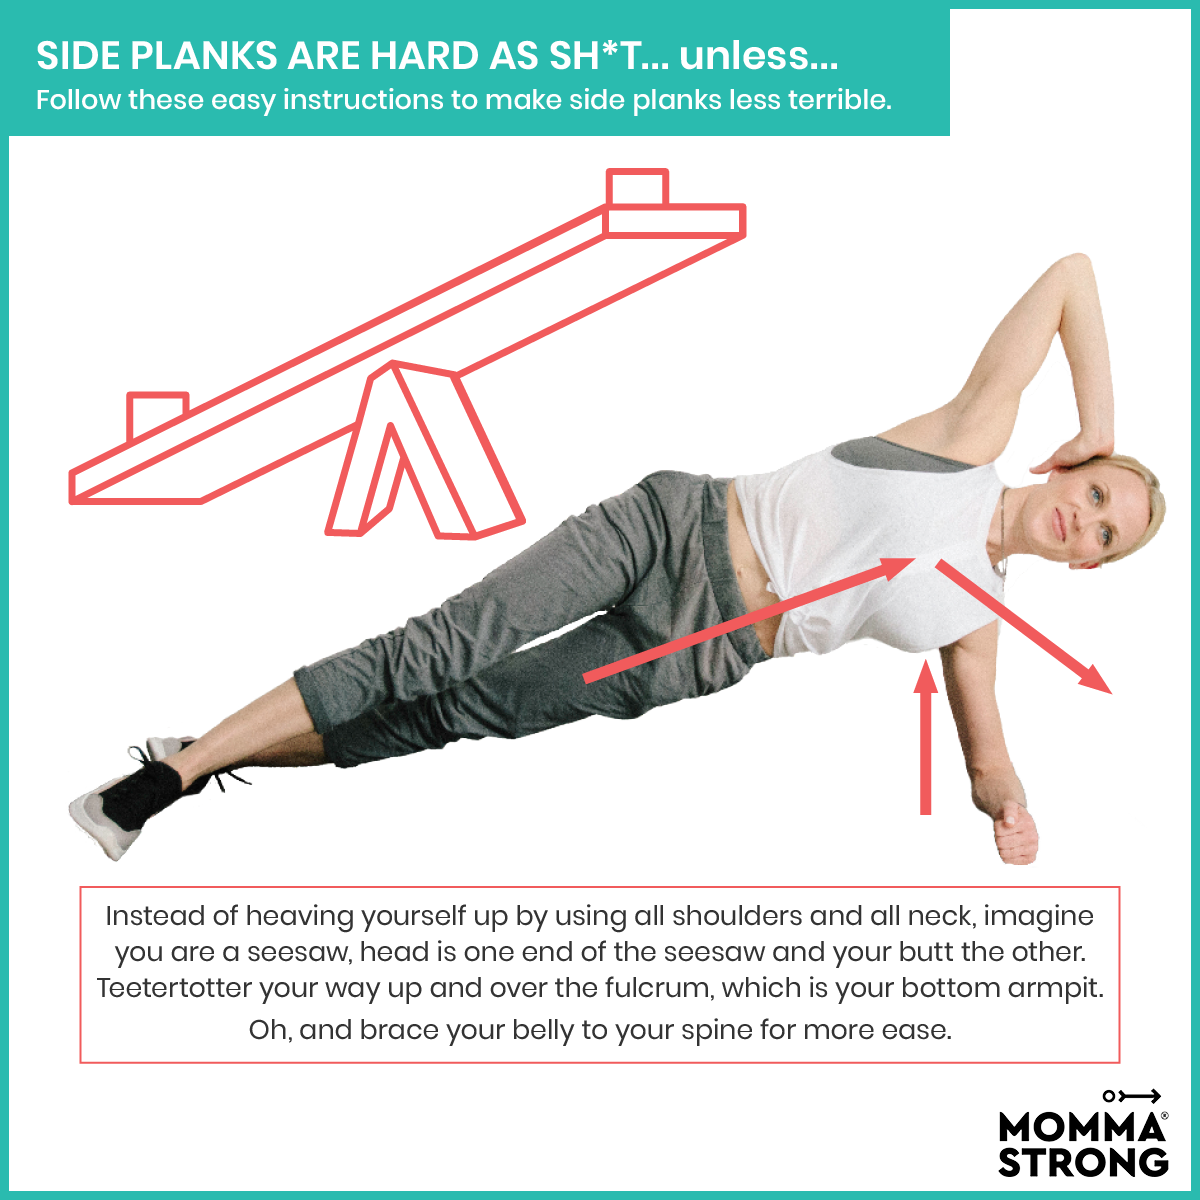 Infographic about side planks